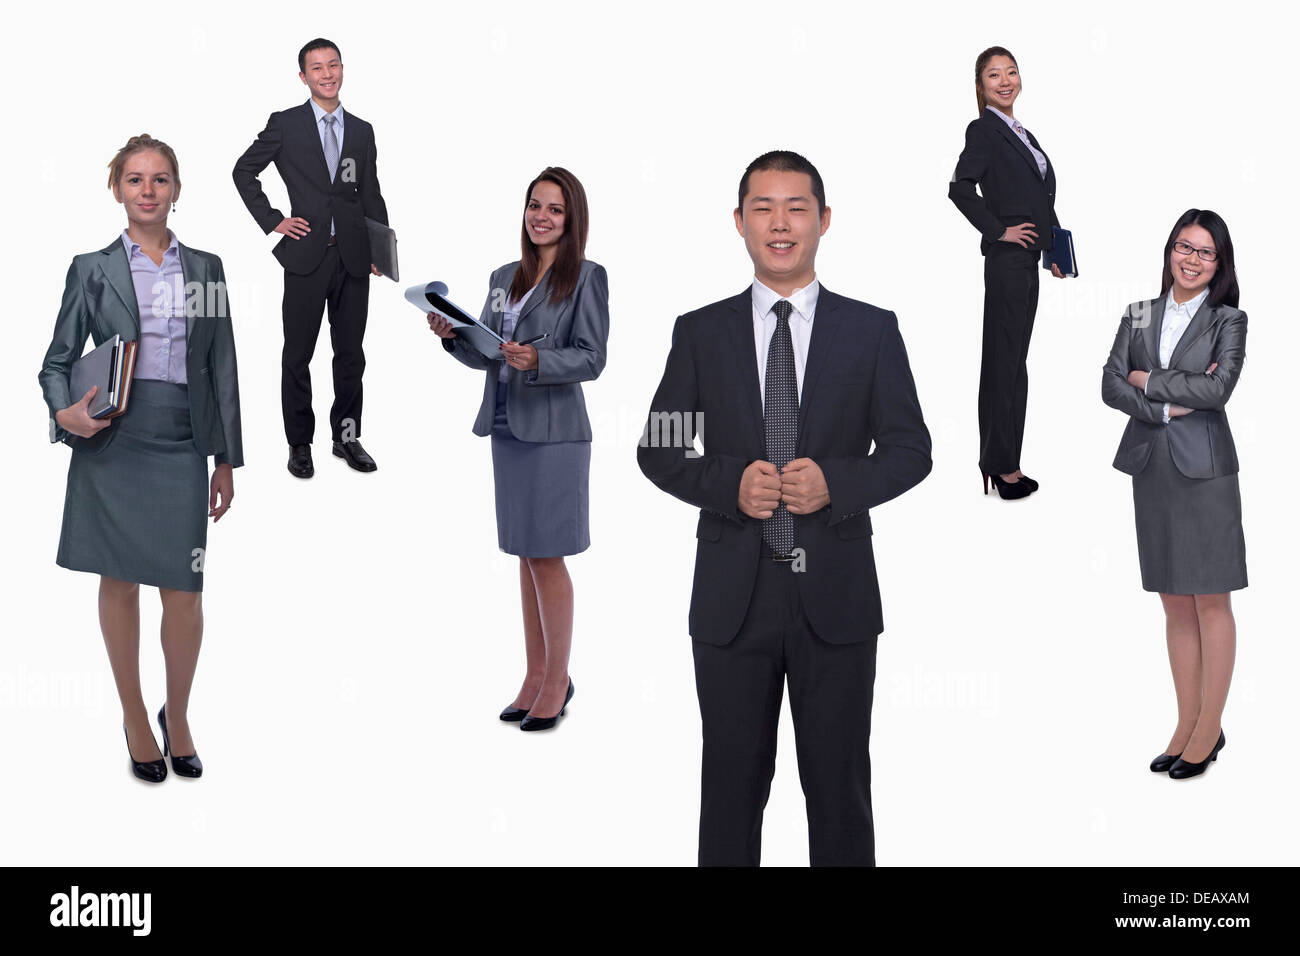 Medium group of smiling business people, portrait, full length, studio shot Stock Photo